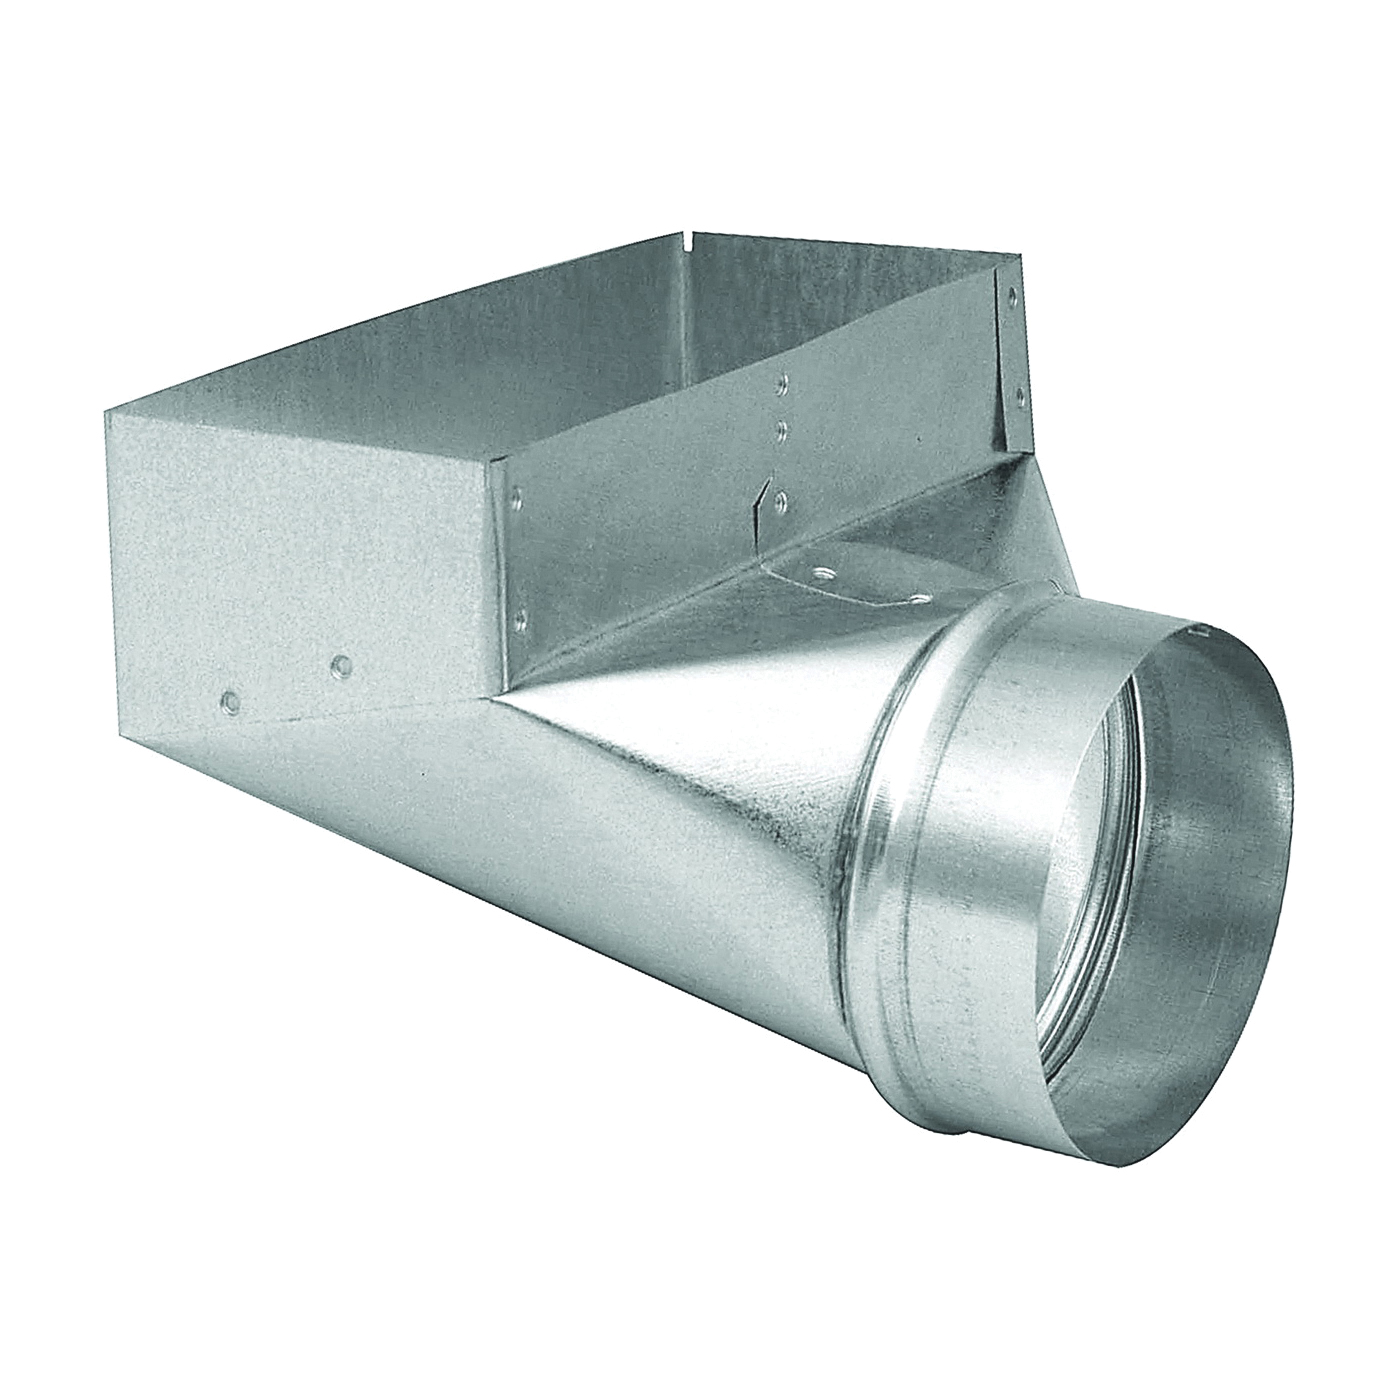 Picture of Imperial GV0604 Angle Boot, 3 in L, 10 in W, 4 in H, 90 deg Angle, Steel, Galvanized